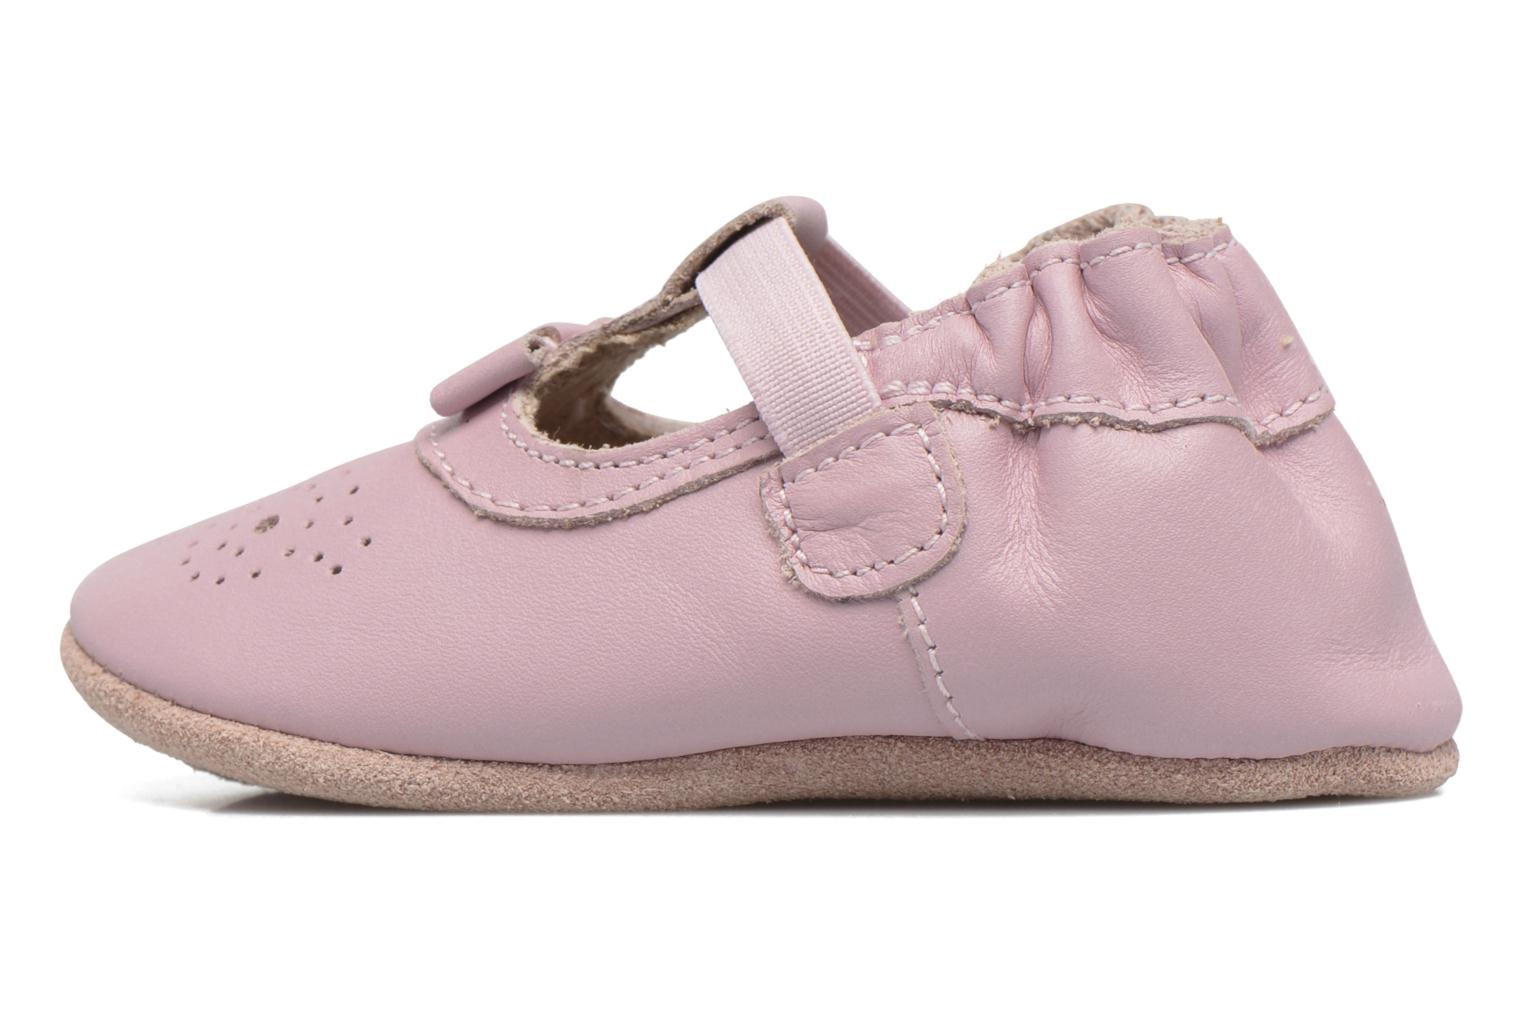 Chaussons Robeez Pretty Girl Rose vue face